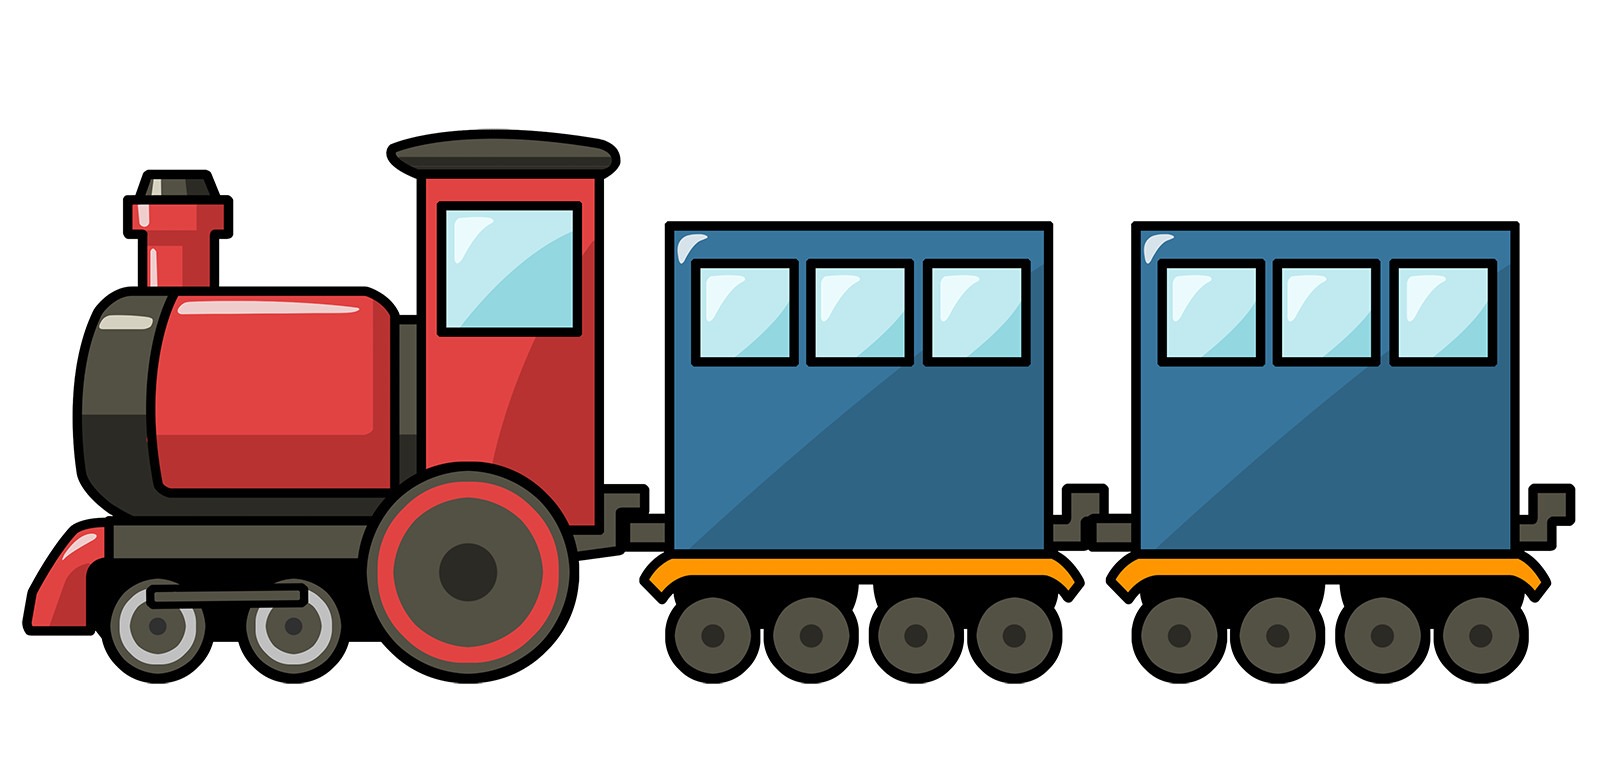 Clipart car painting. Cartoon train free cute